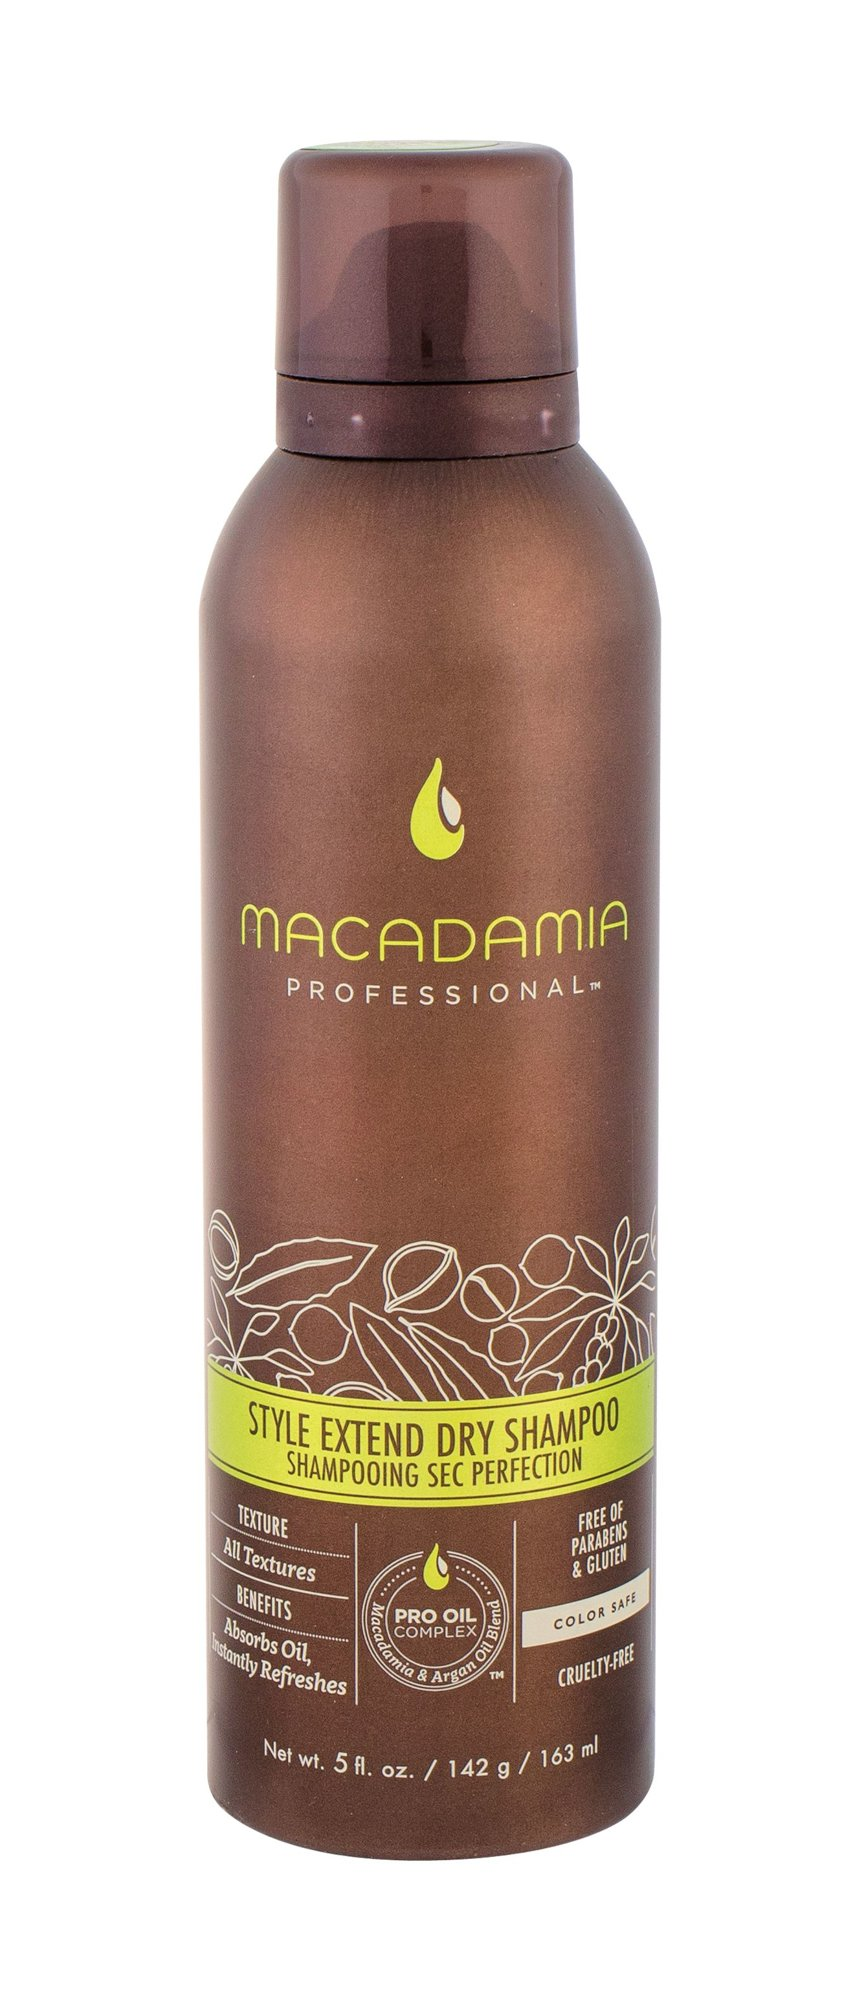 Macadamia Professional Style Extend Dry Shampoo 163ml